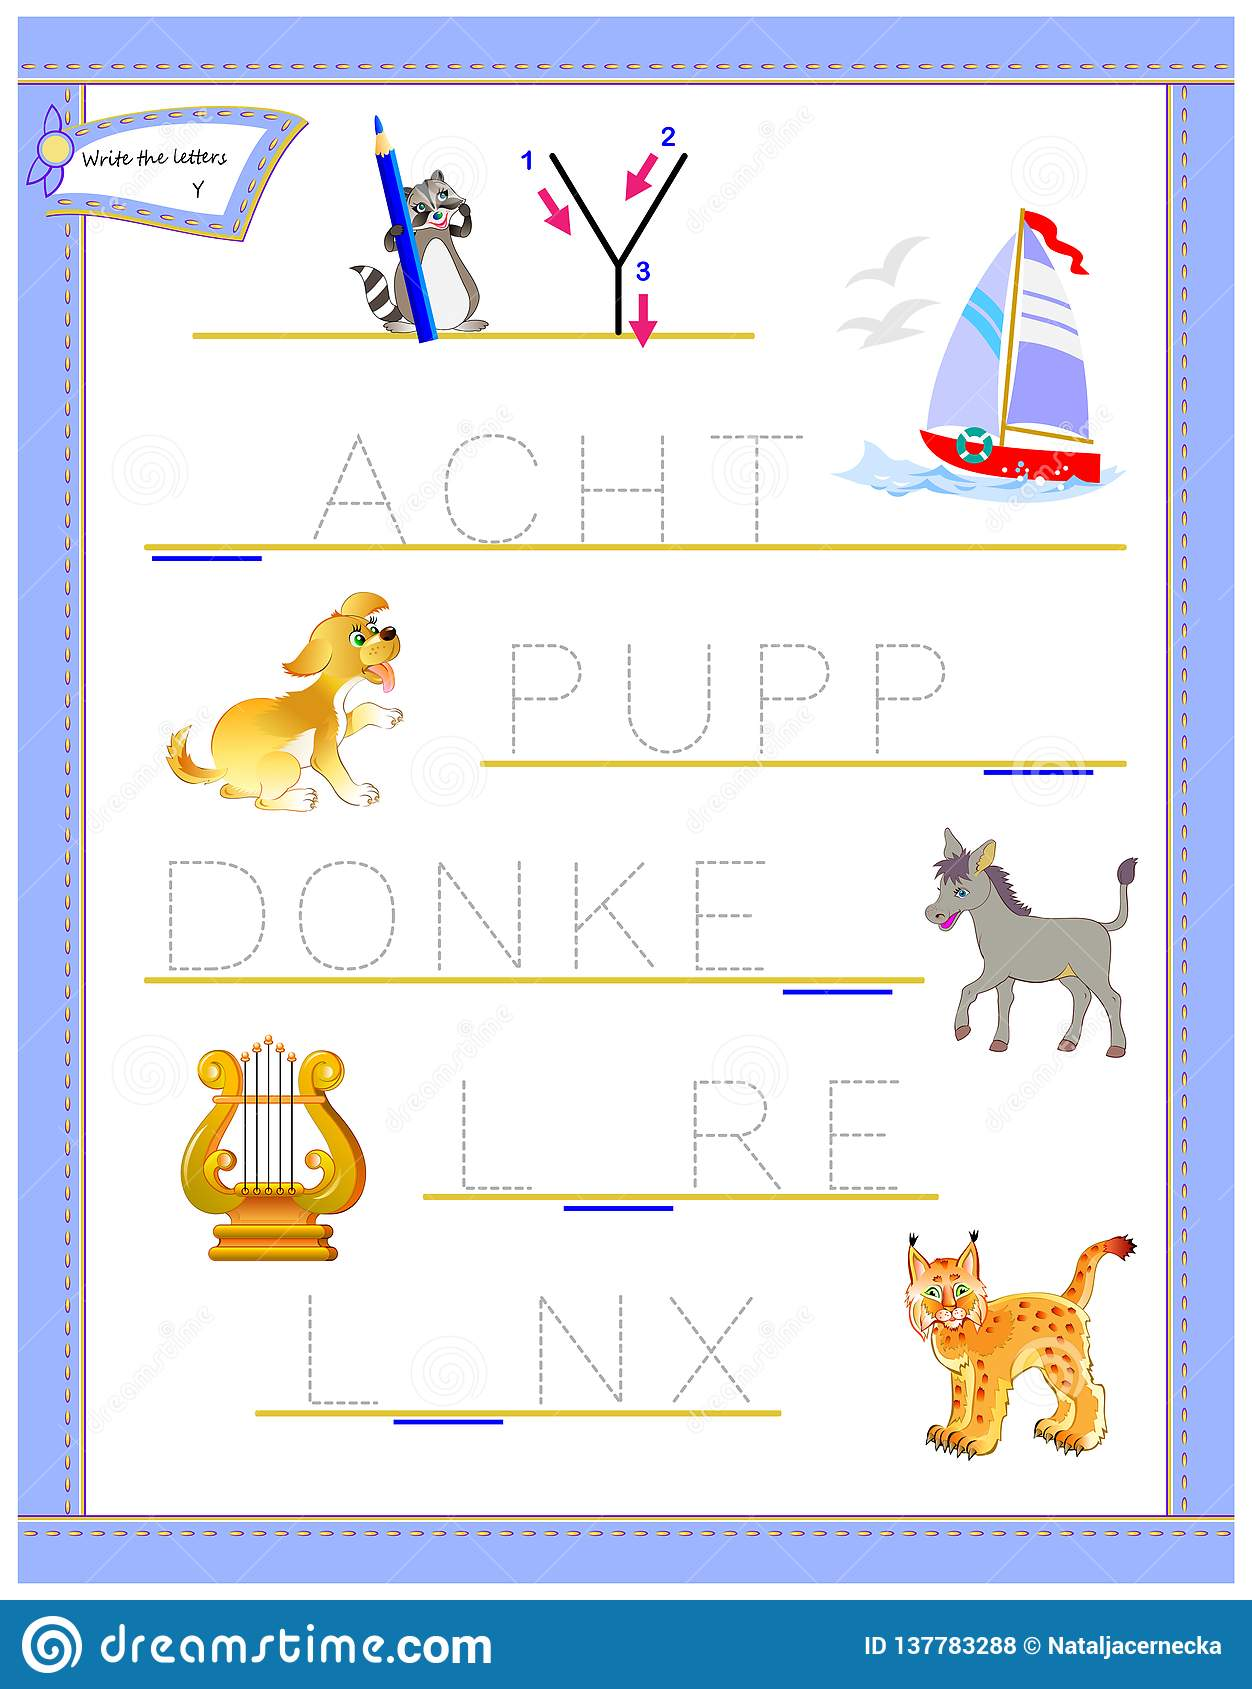 picture relating to Letter Y Printable named Tracing Letter Y For Research English Alphabet. Printable